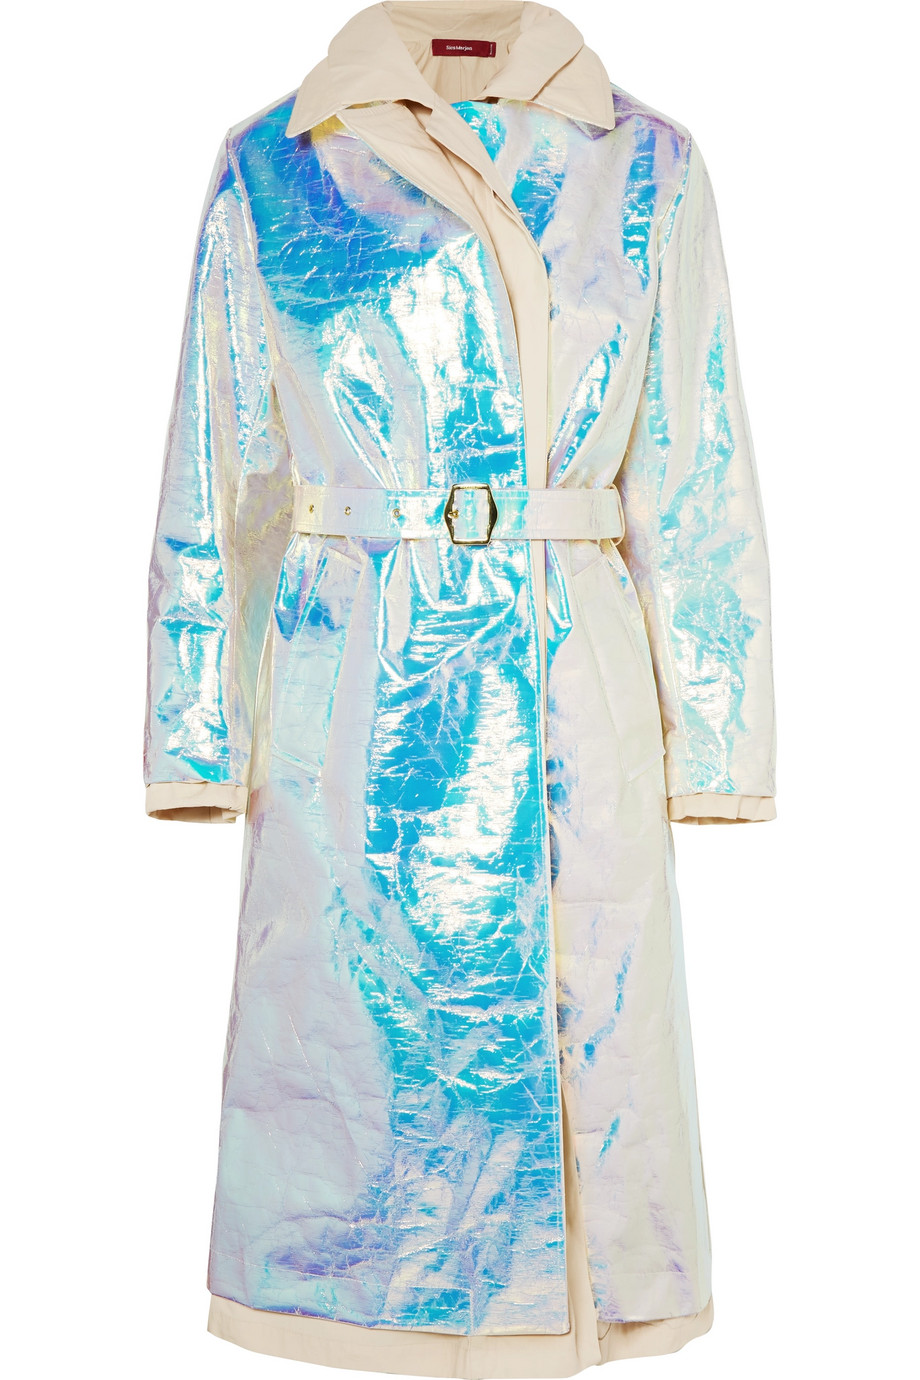 SIES MARJAN Devin layered iridescent coated-shell and cotton-canvas trench coat, £1,330